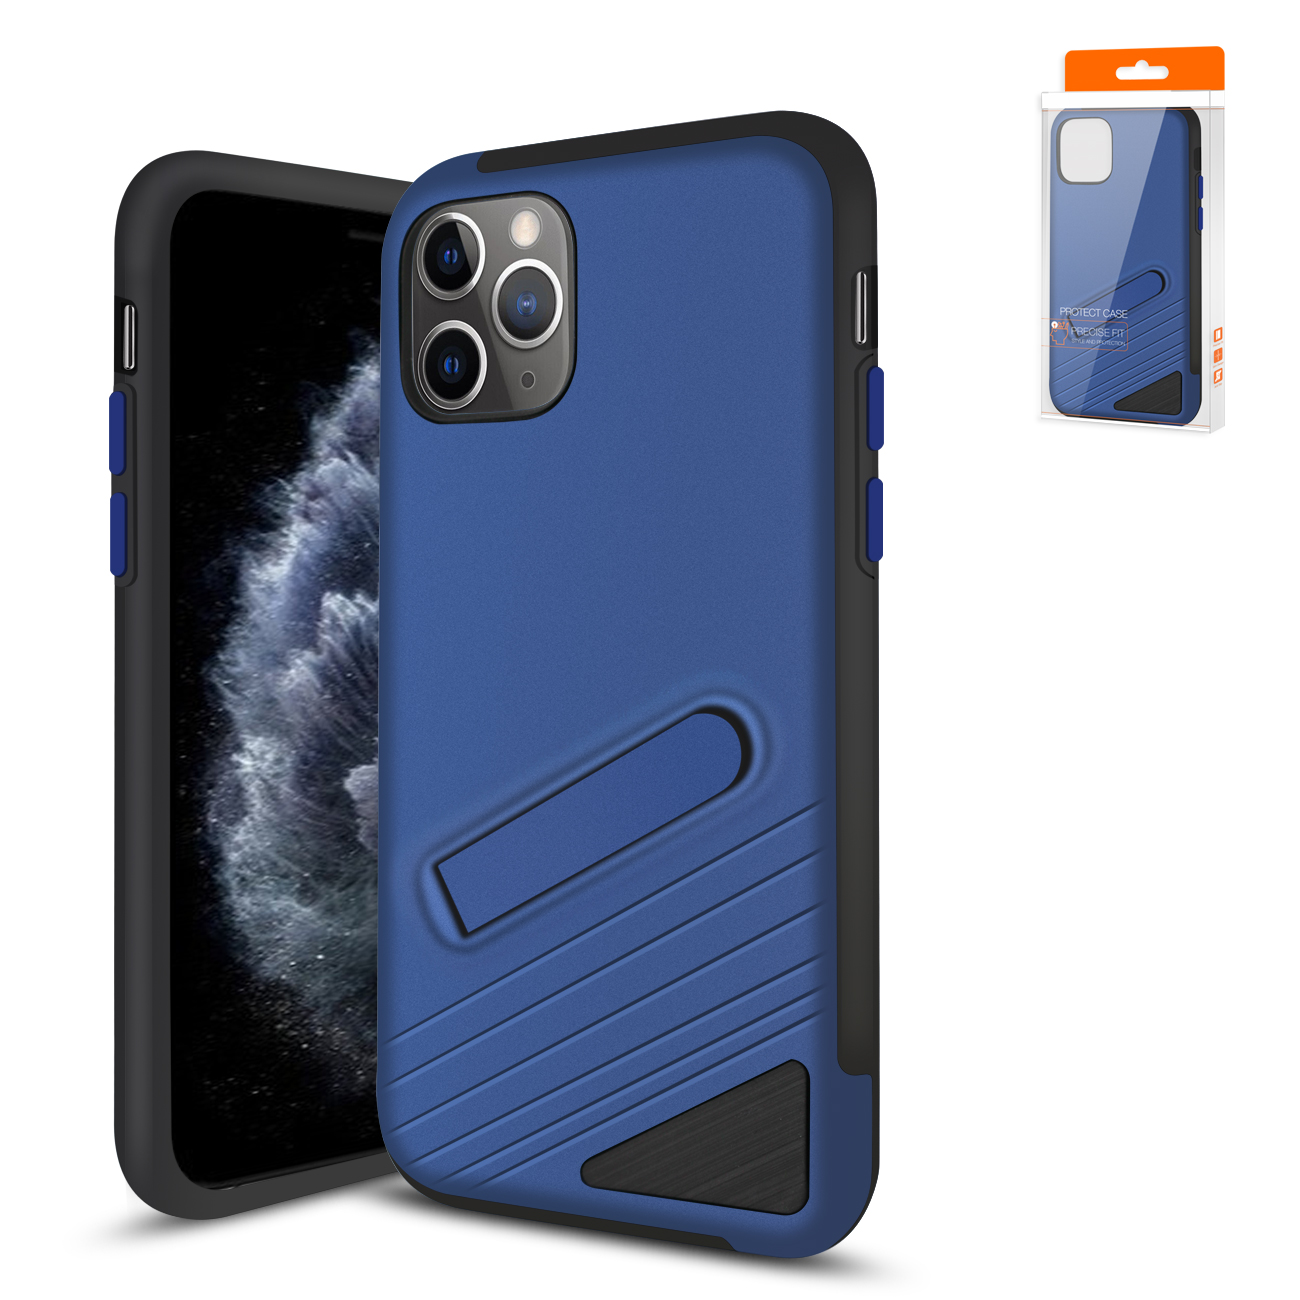 Apple iPhone 11 Pro Armor Cases In Navy